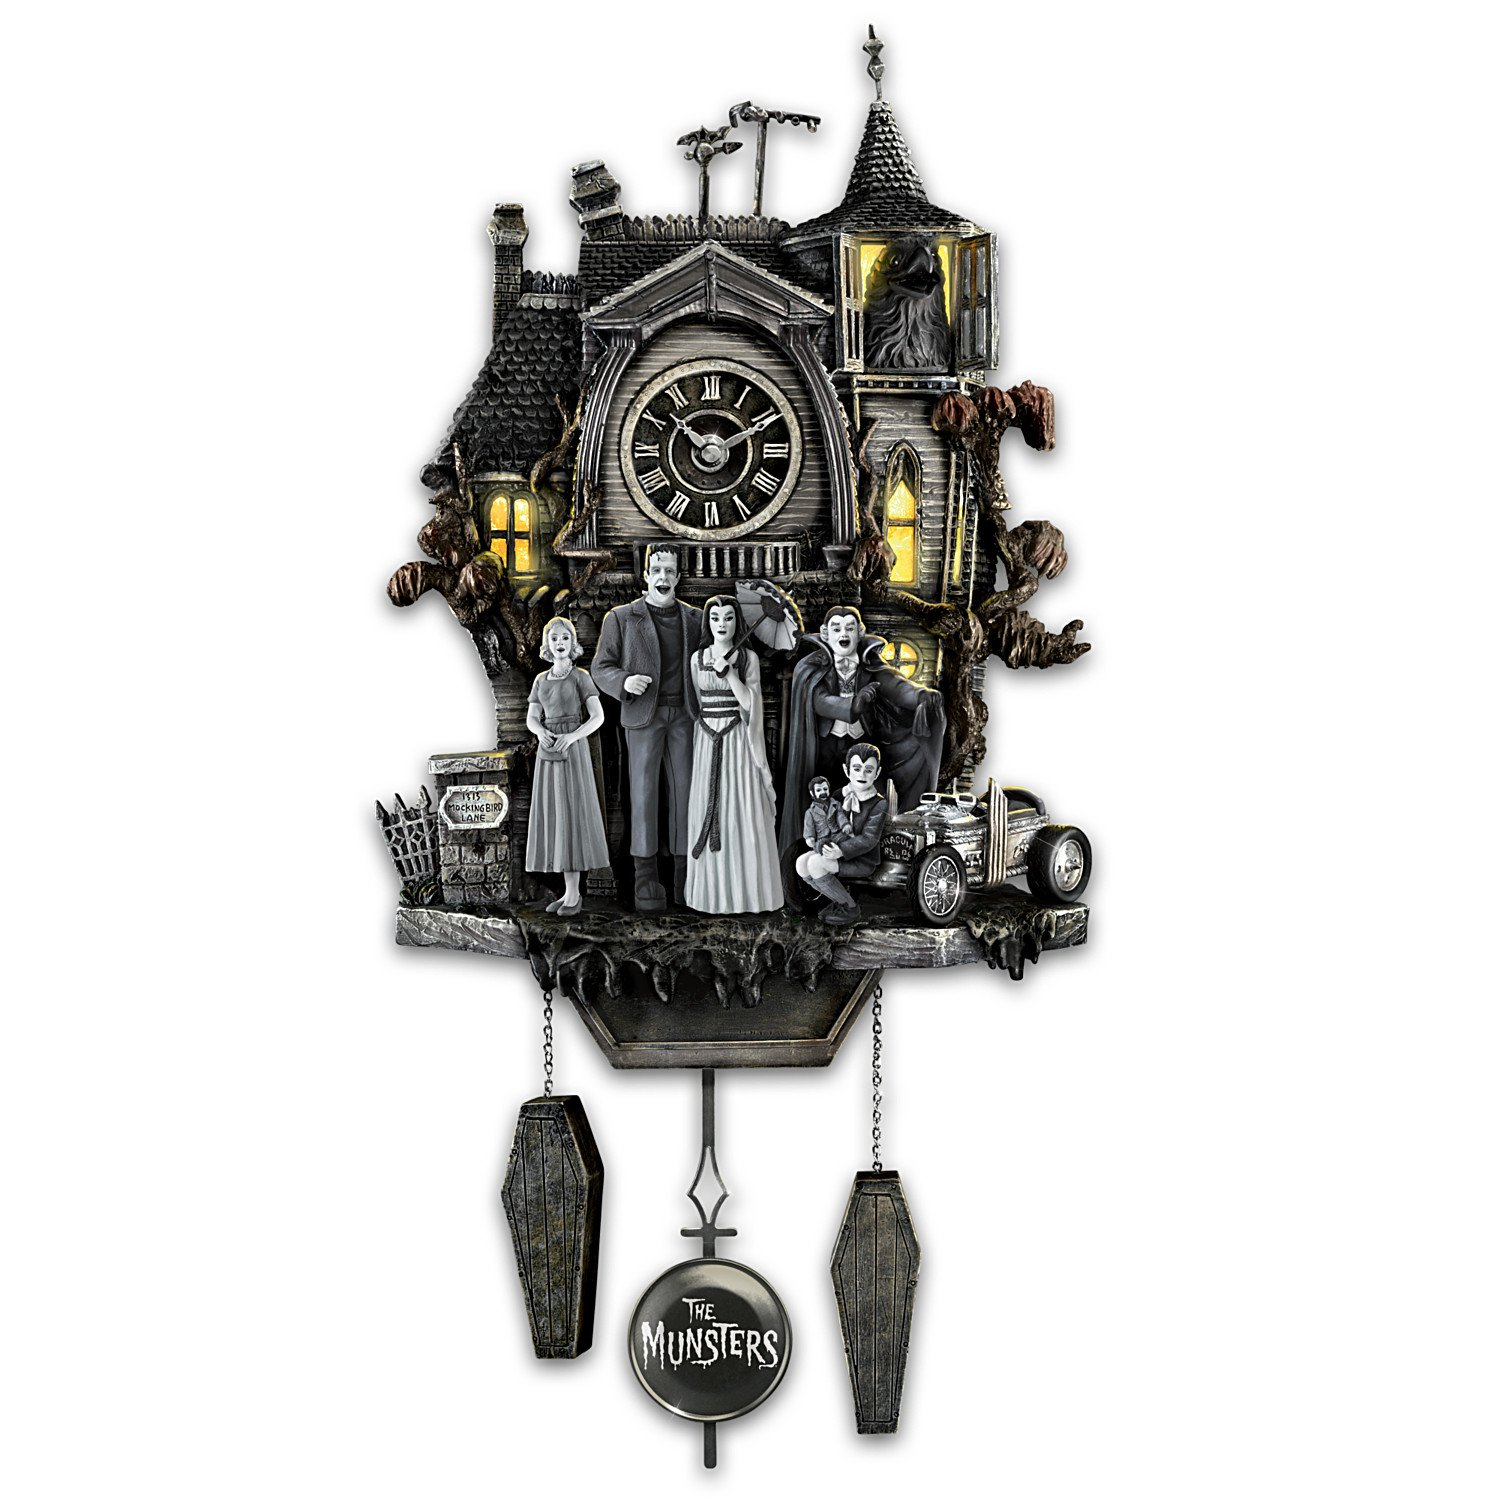 Amazoncom The Munsters Cuckoo Clock with Flickering Lights and